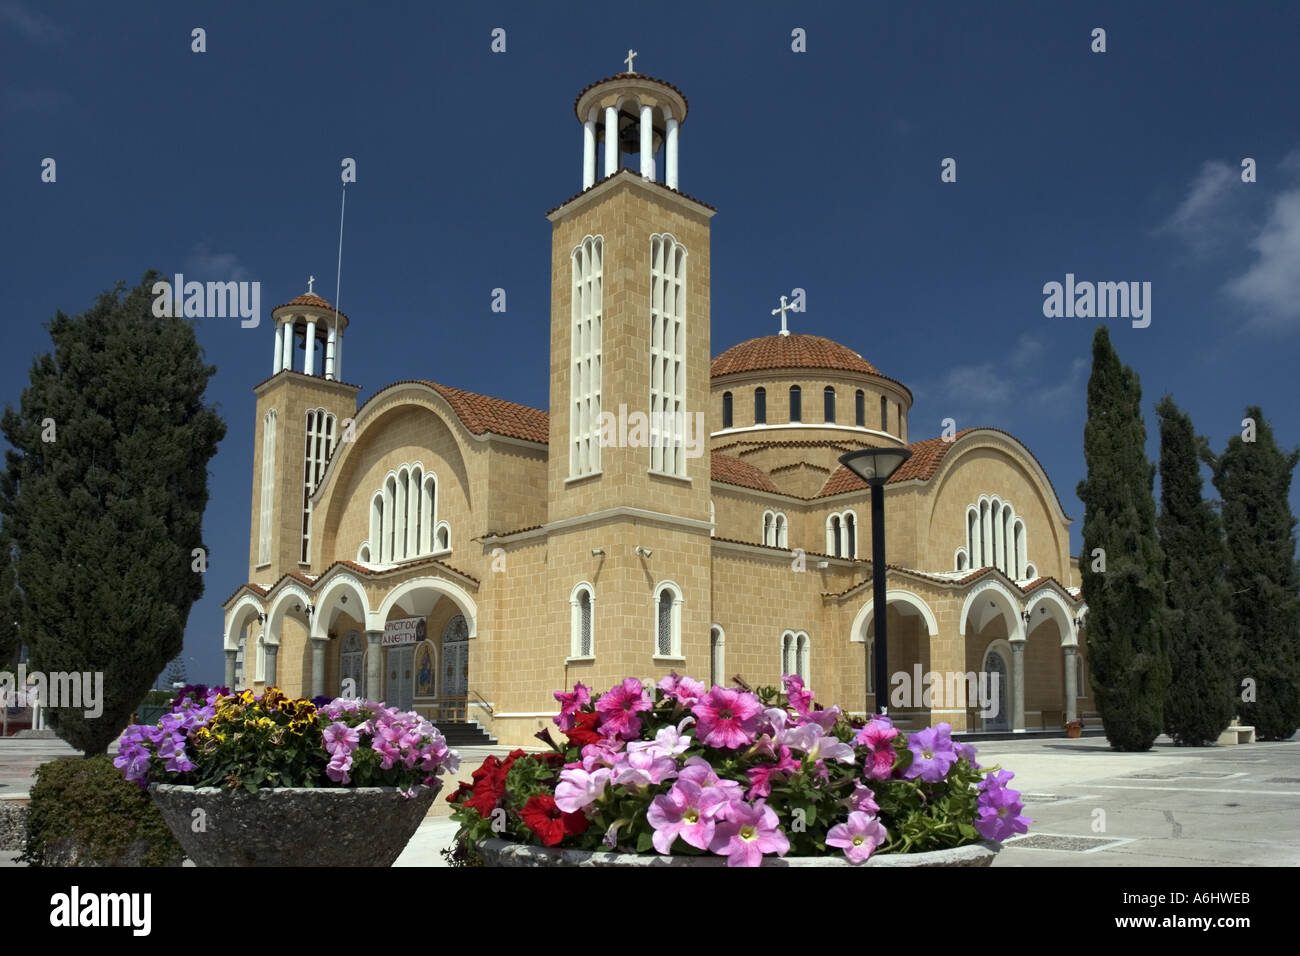 The new St George church in Paralimni Cyprus  Stock Photo